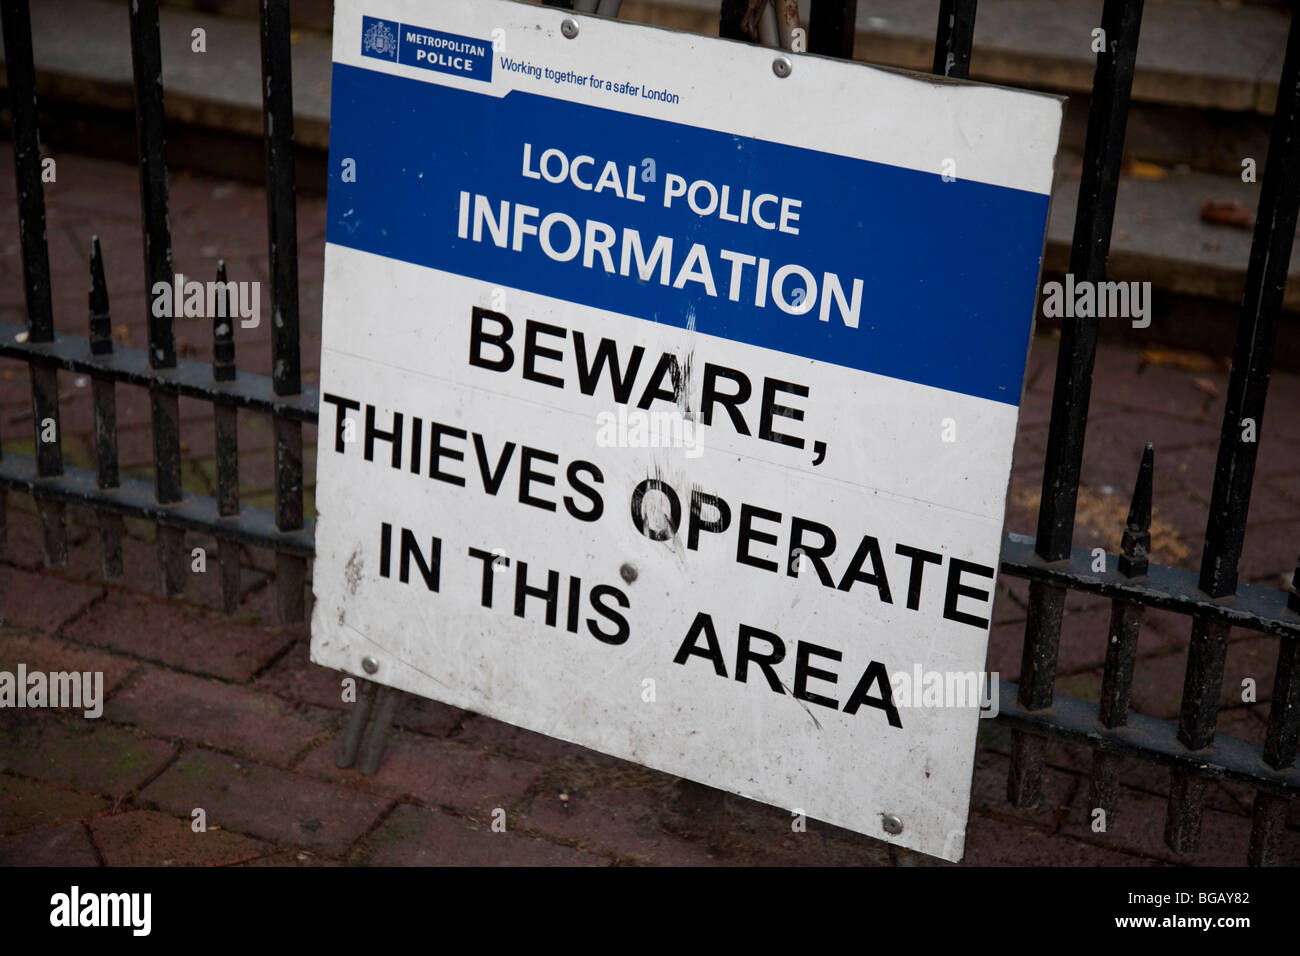 Sign warns of thieves operating in the area. - Stock Image